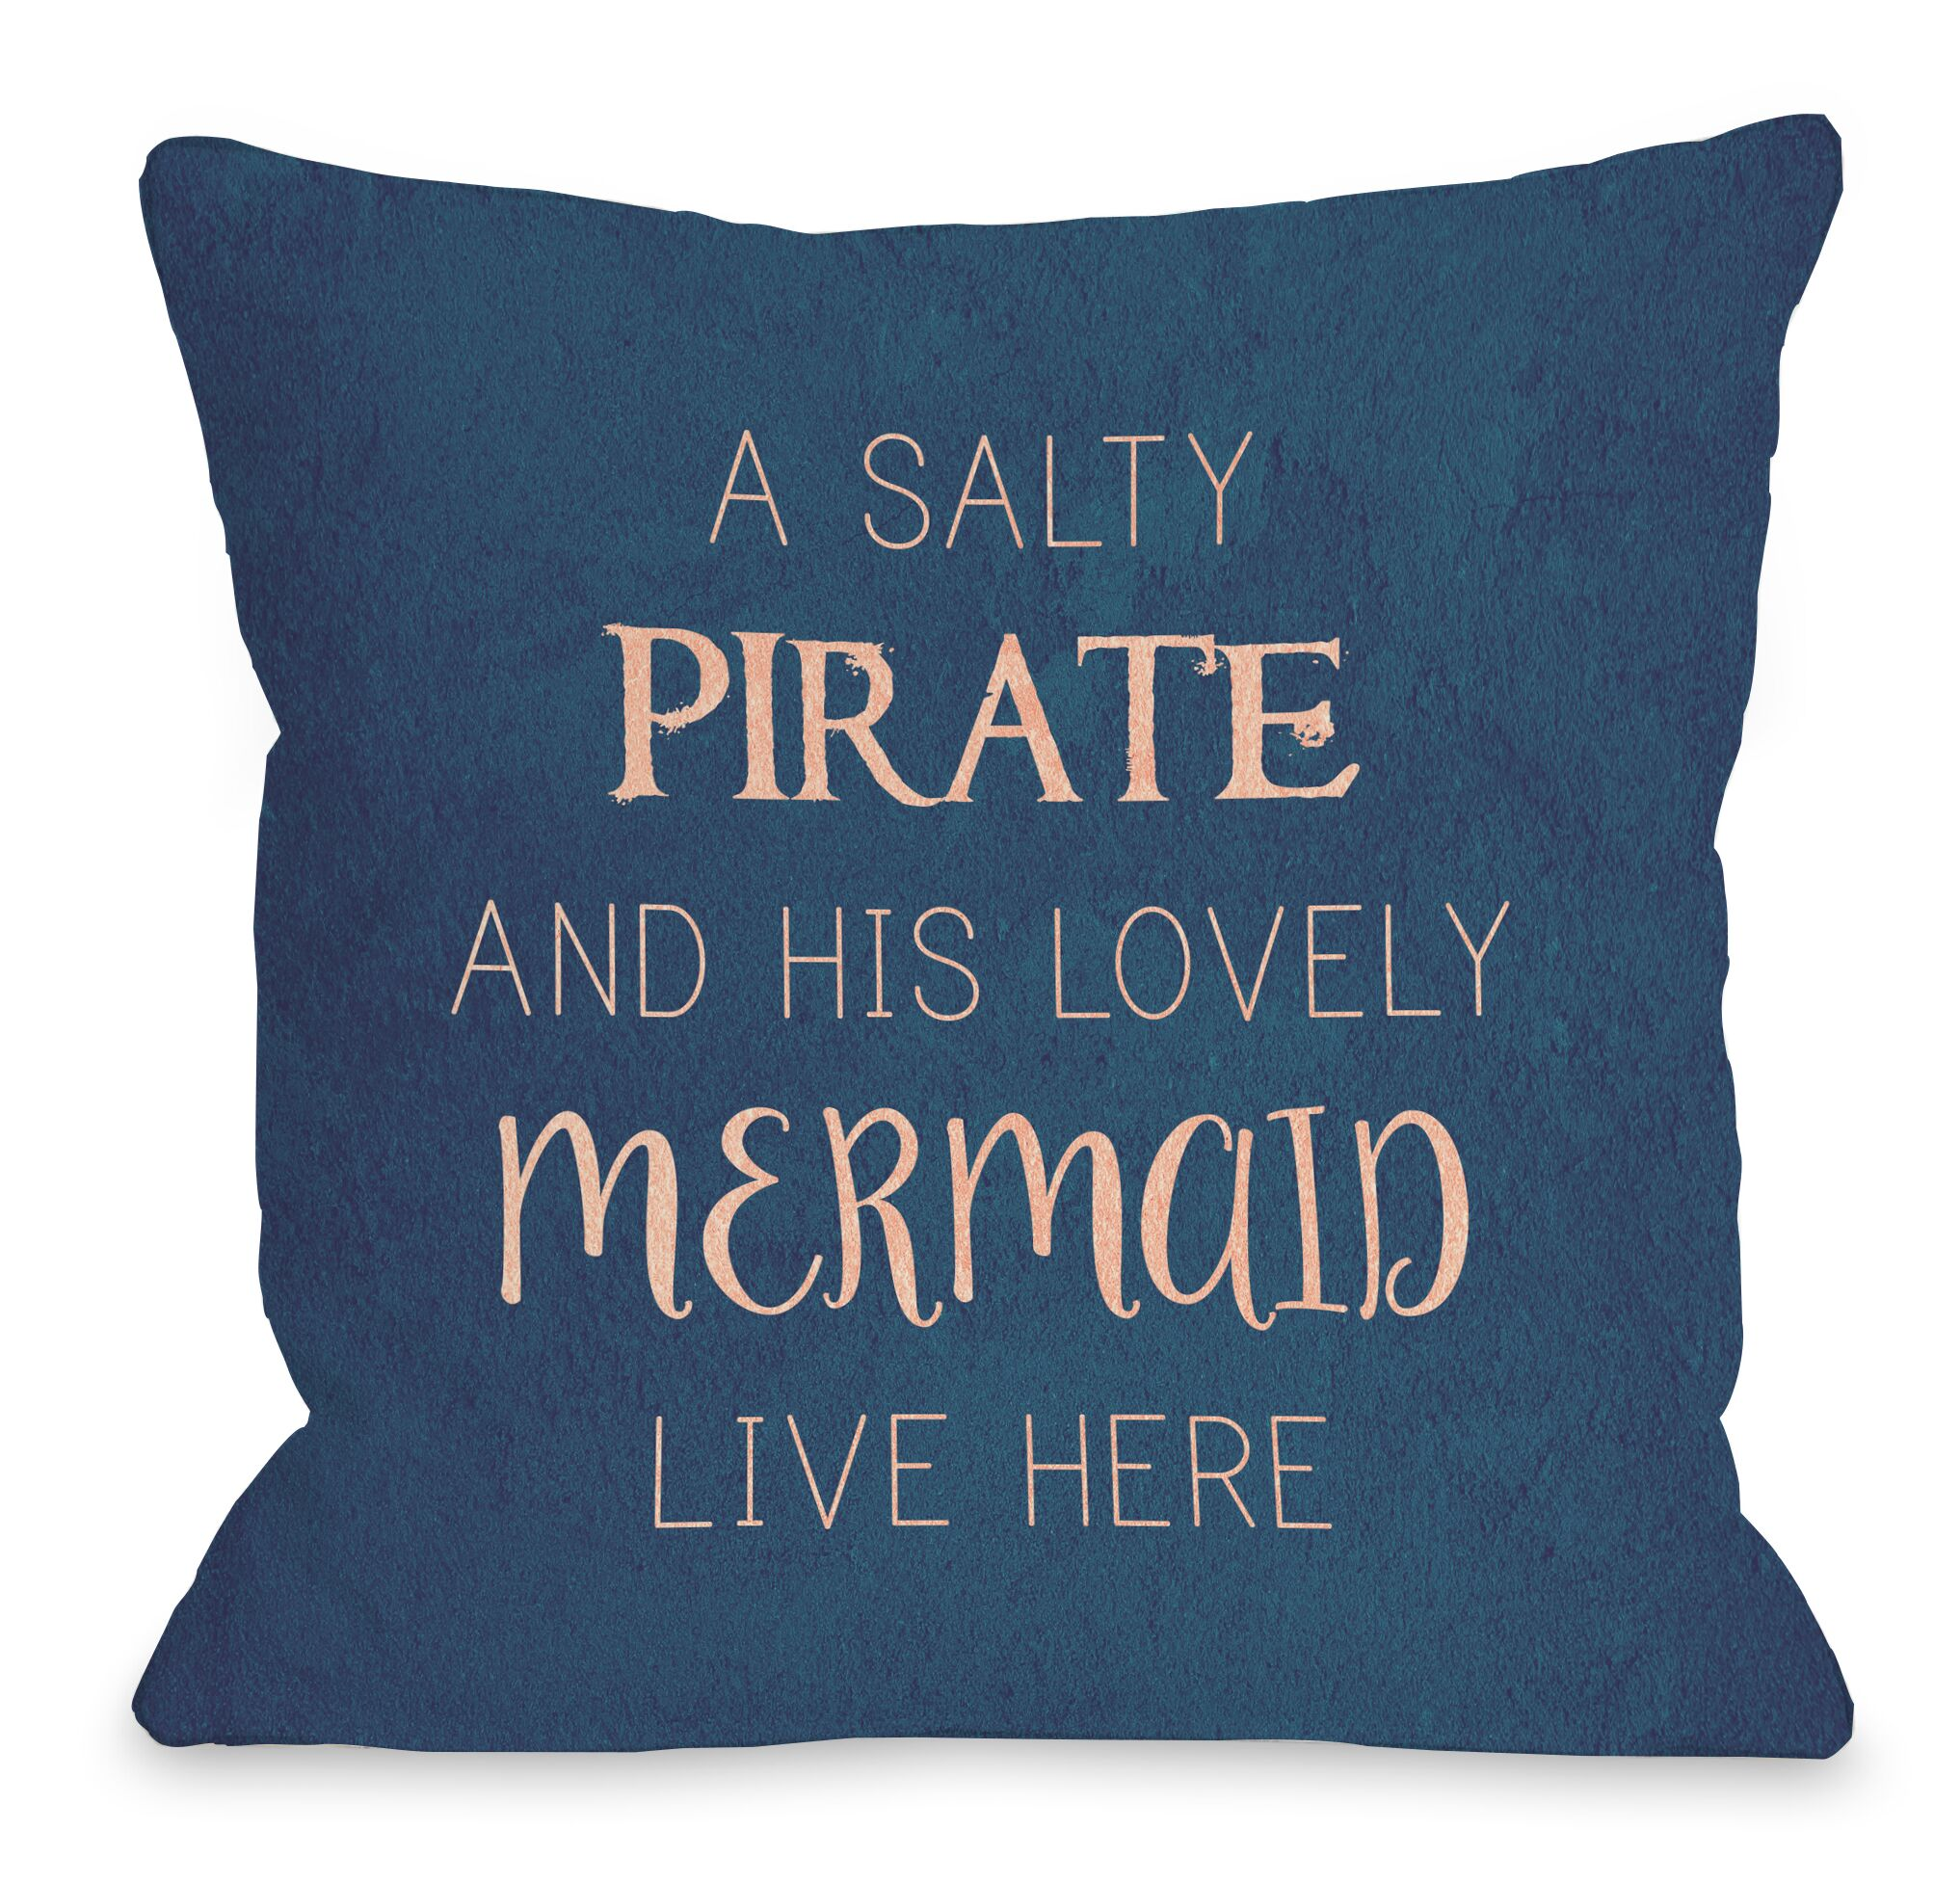 Salty Pirate Lovely Mermaid Throw Pillow Size: 16